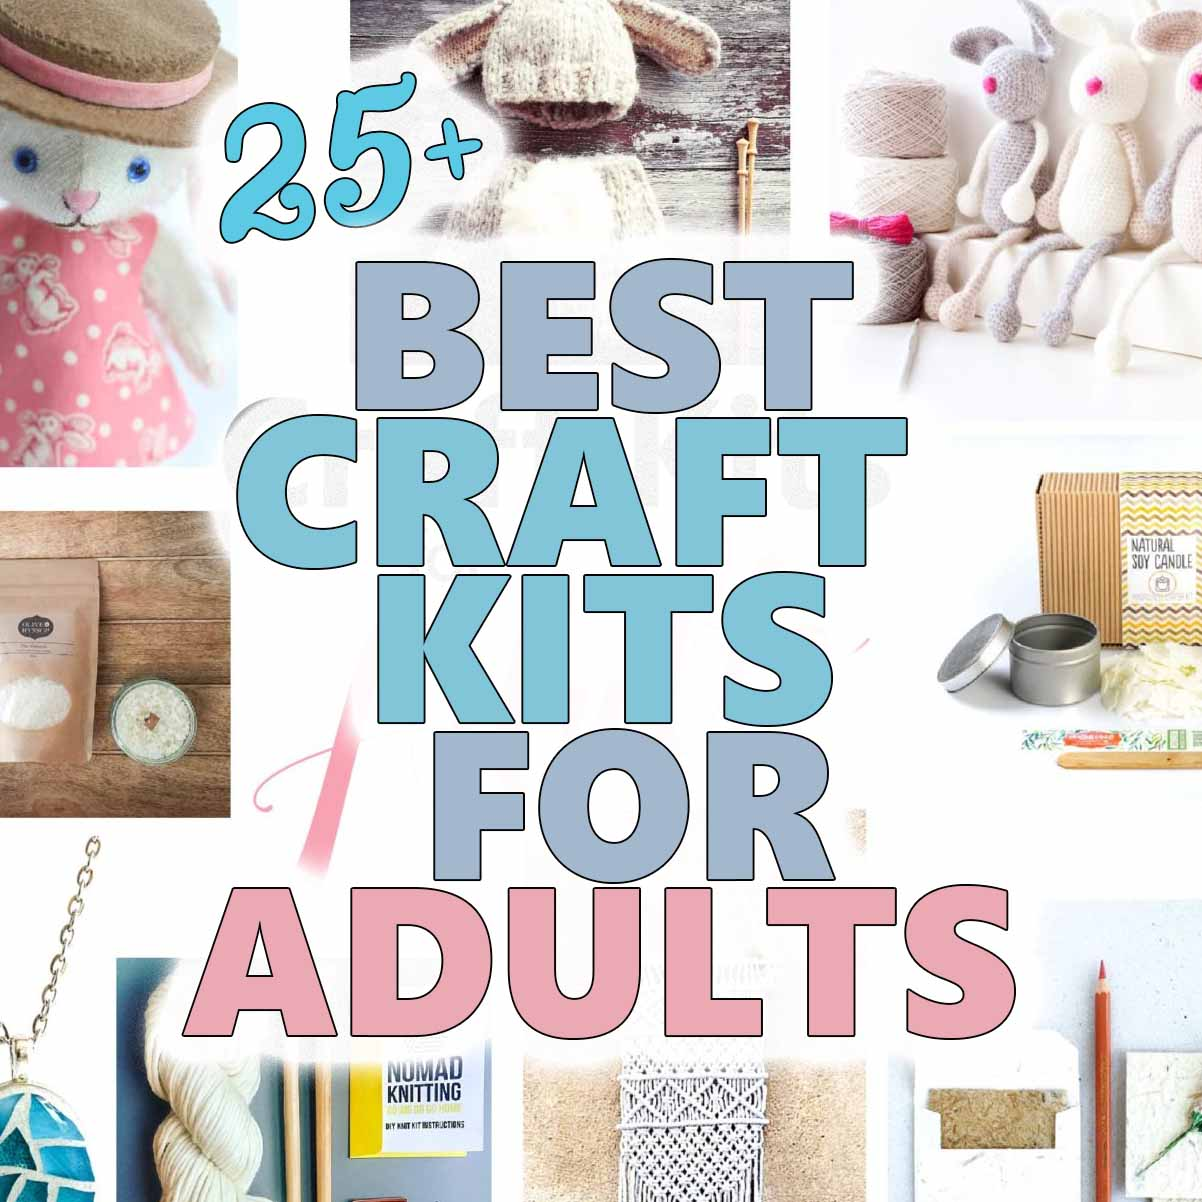 20 of the Best Craft Kits for Adults 20 – Sustain My Craft Habit